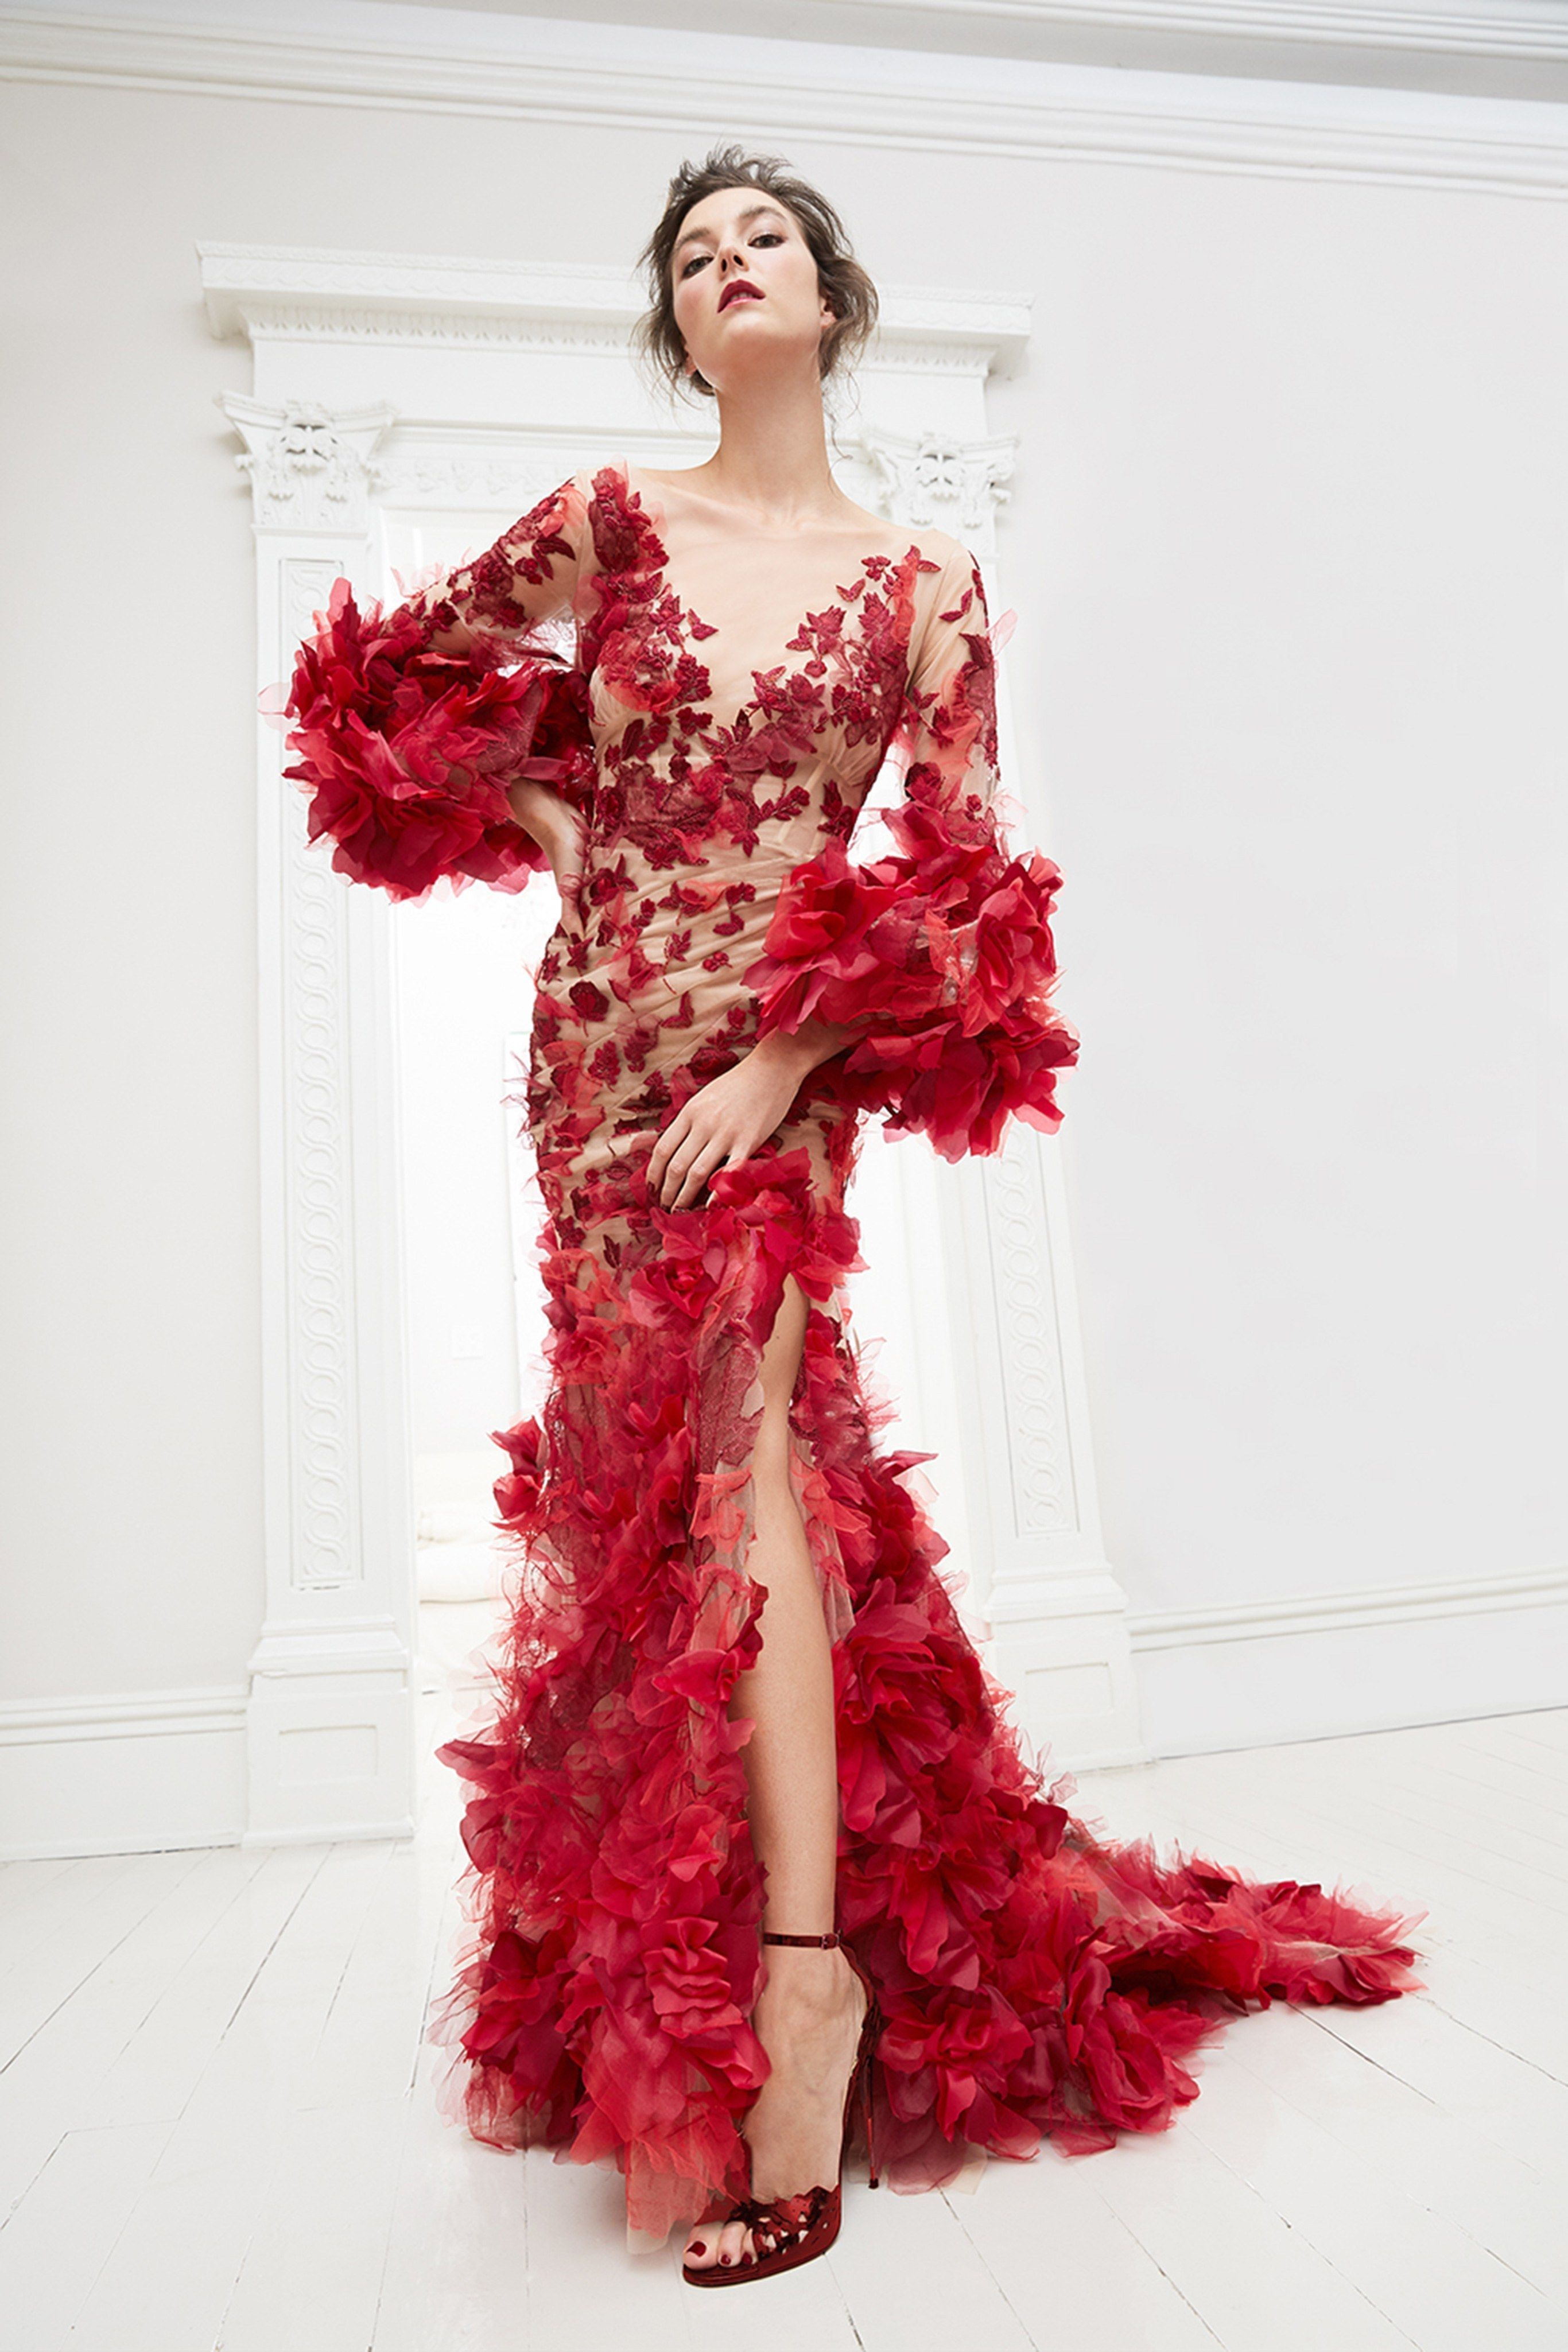 Styling tips #Marchesa #couture Marchesa couture, Marchesa ready